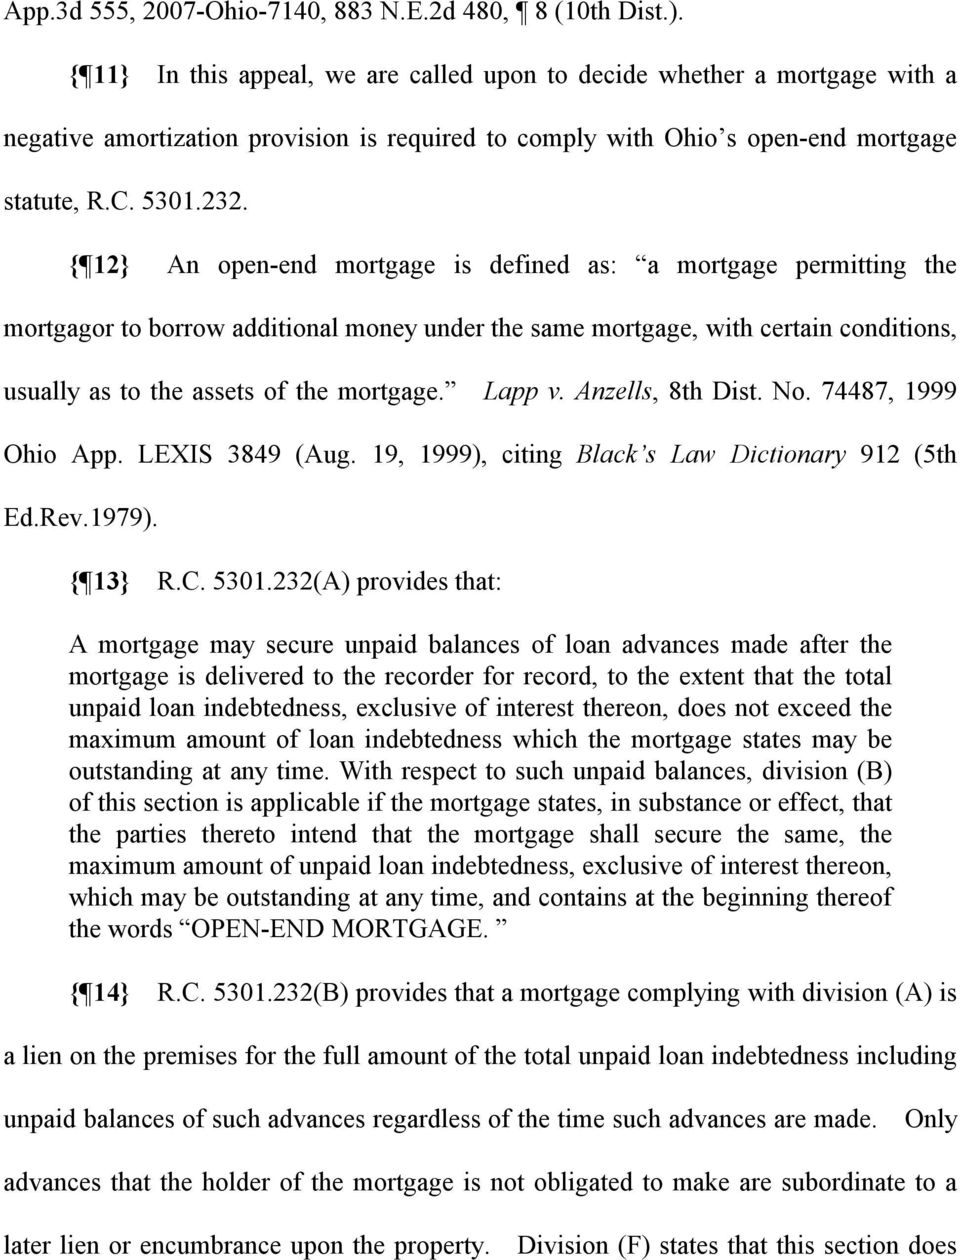 { 12} An open-end mortgage is defined as: a mortgage permitting the mortgagor to borrow additional money under the same mortgage, with certain conditions, usually as to the assets of the mortgage.